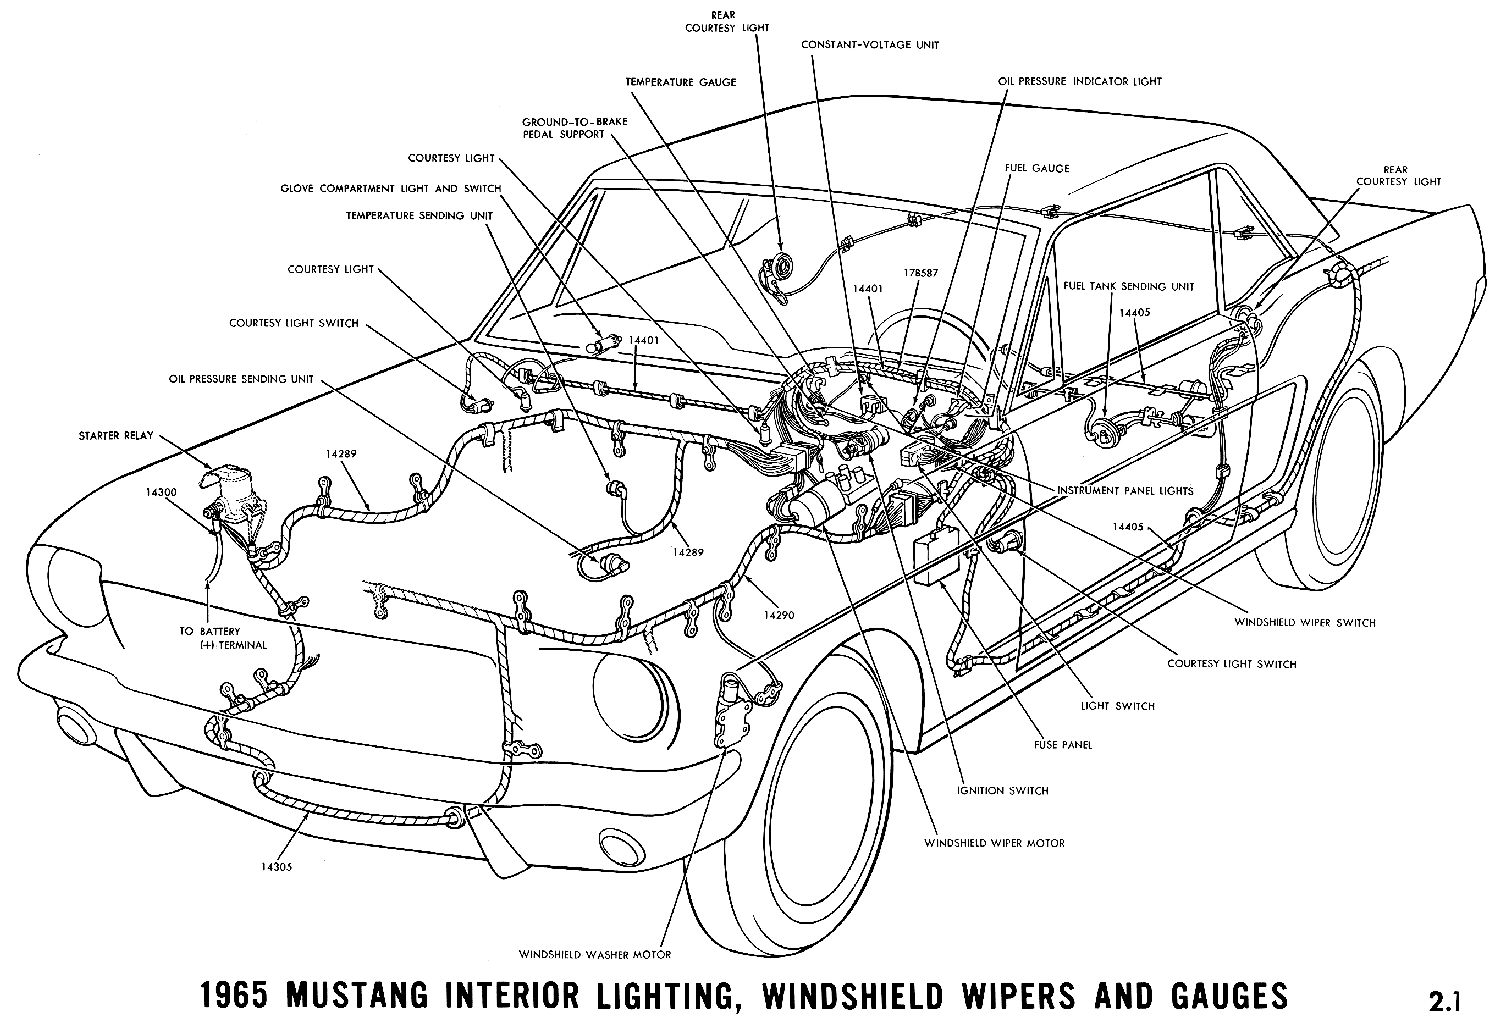 basic car engine wiring diagram with 1965 Mustang Wiring Diagrams on 48r53 Wiring Diagram 1991 Ford Starter Solenoid 302 additionally Hot Rod Wiring Diagram Light And Signals also RepairGuideContent moreover 1965 Mustang Wiring Diagrams further ElectDiagr.